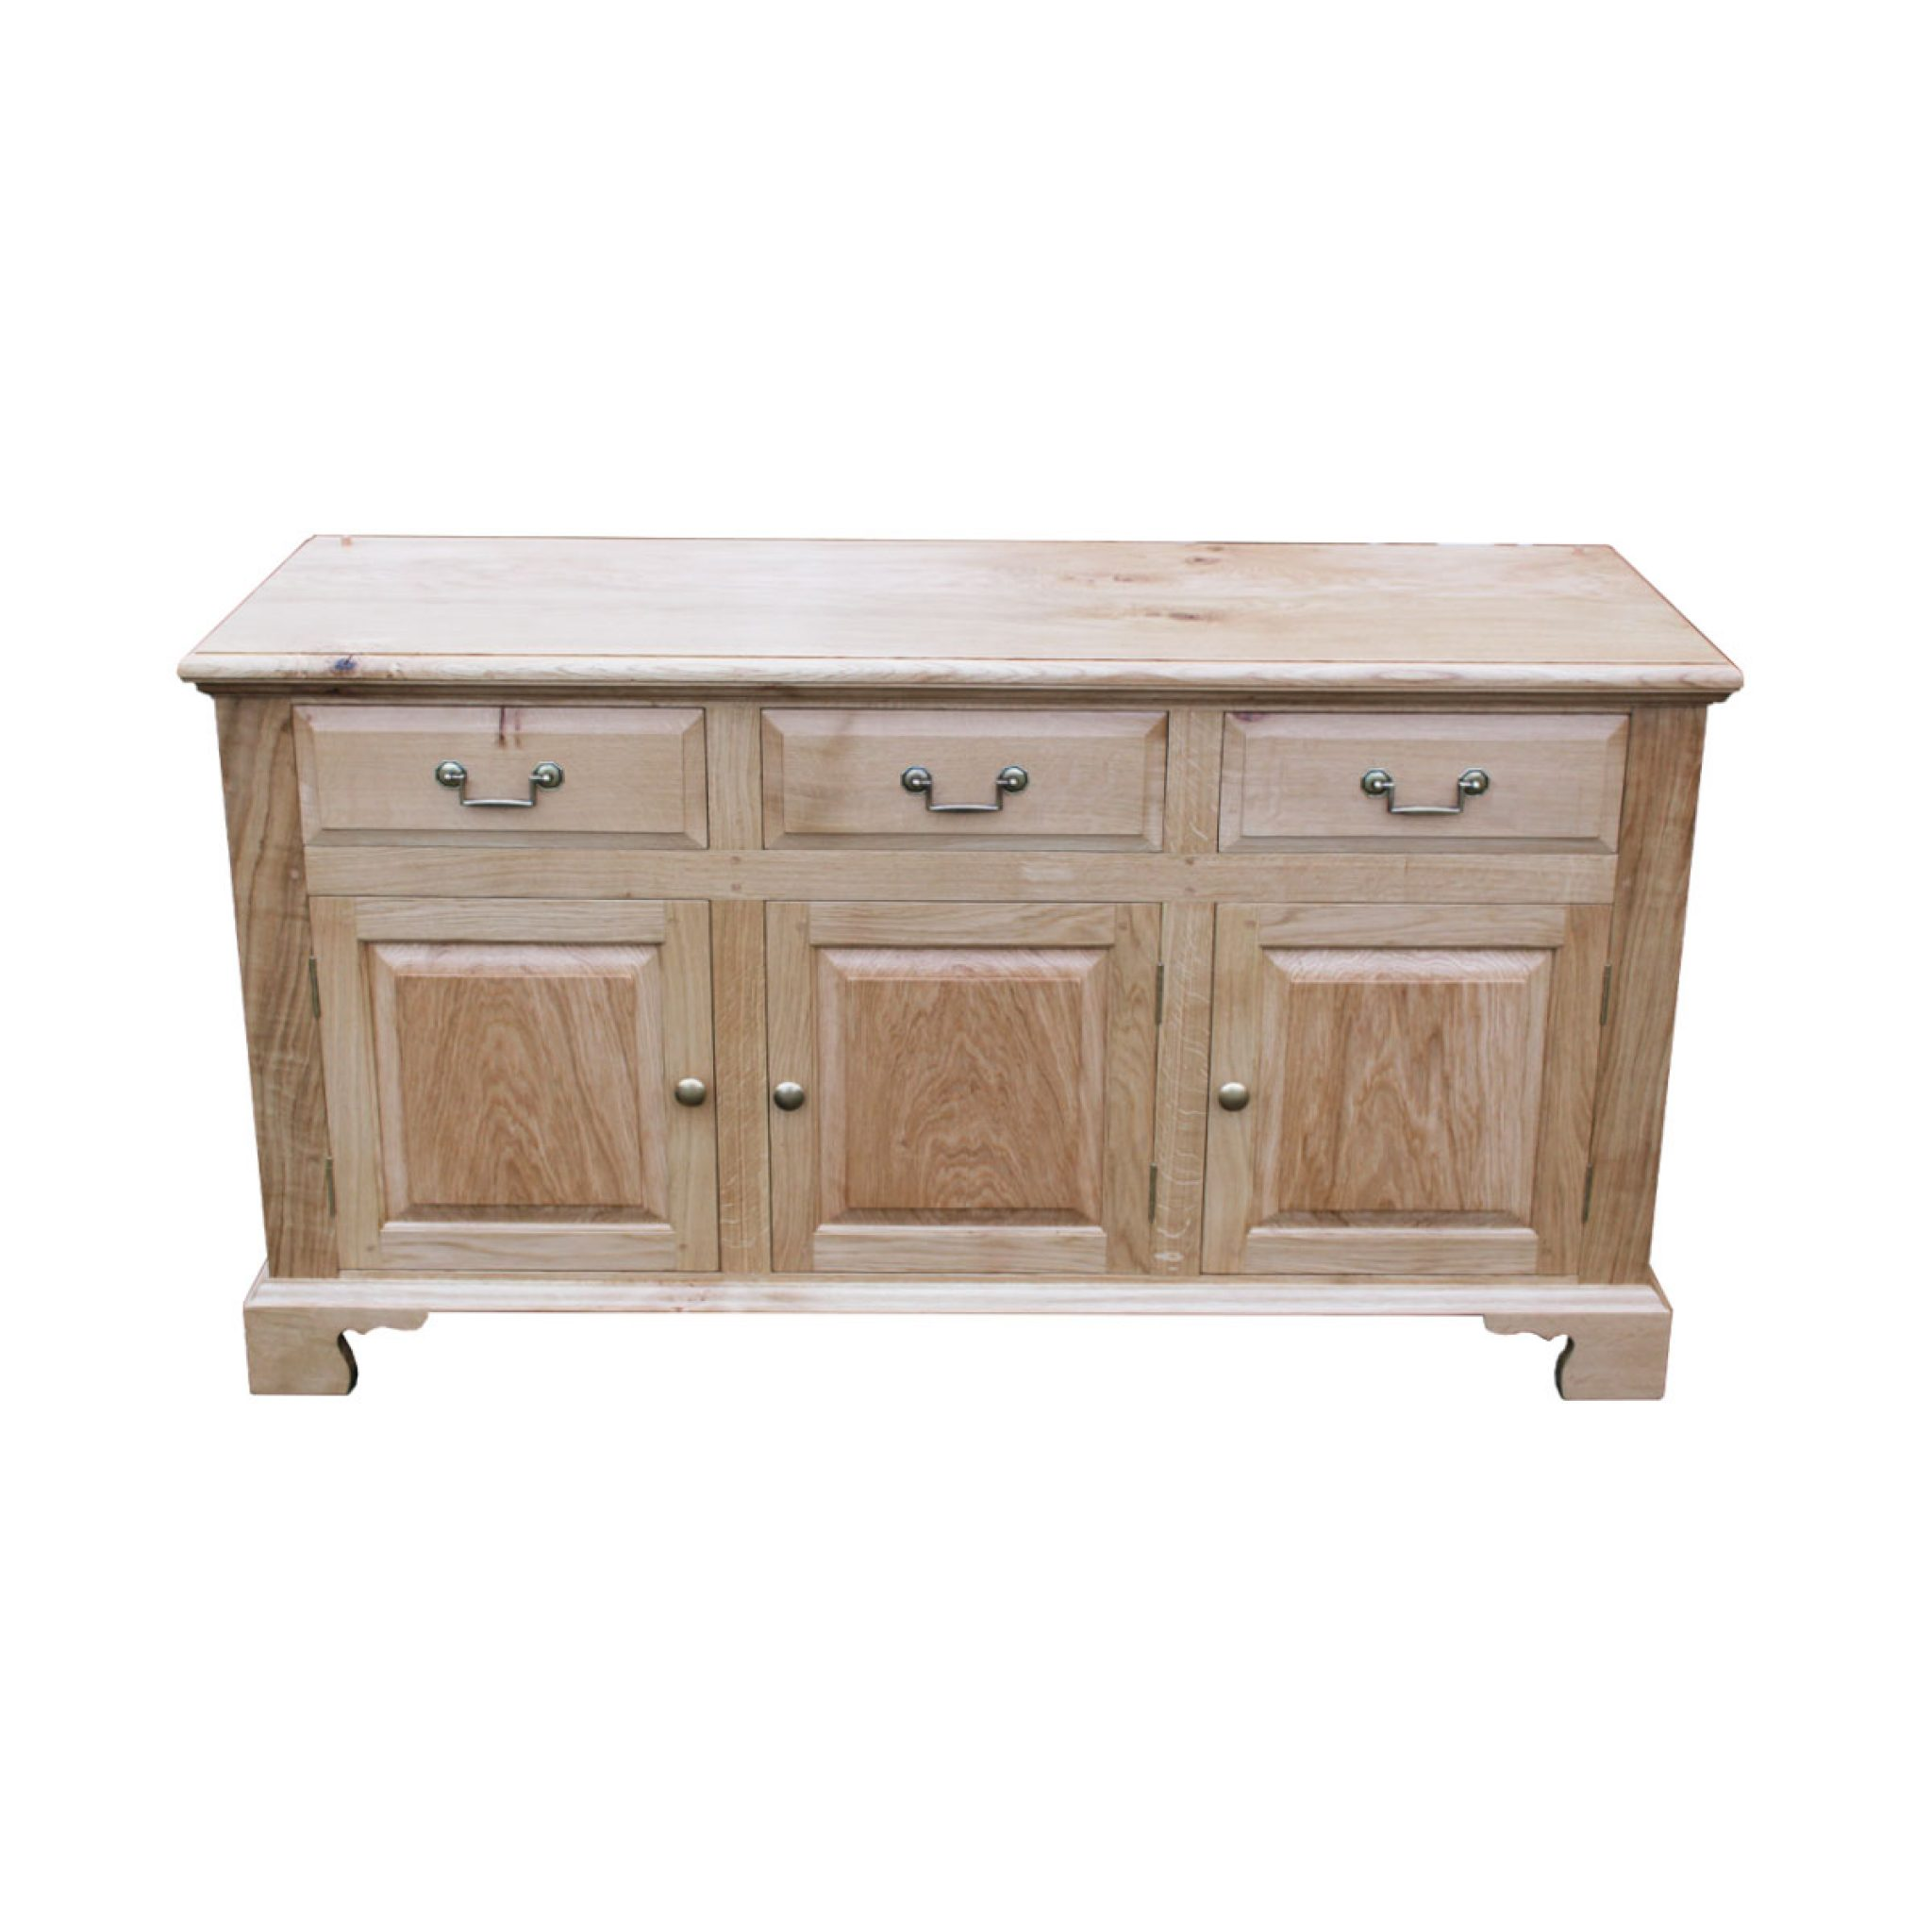 Handmade Oak Furniture Bruton